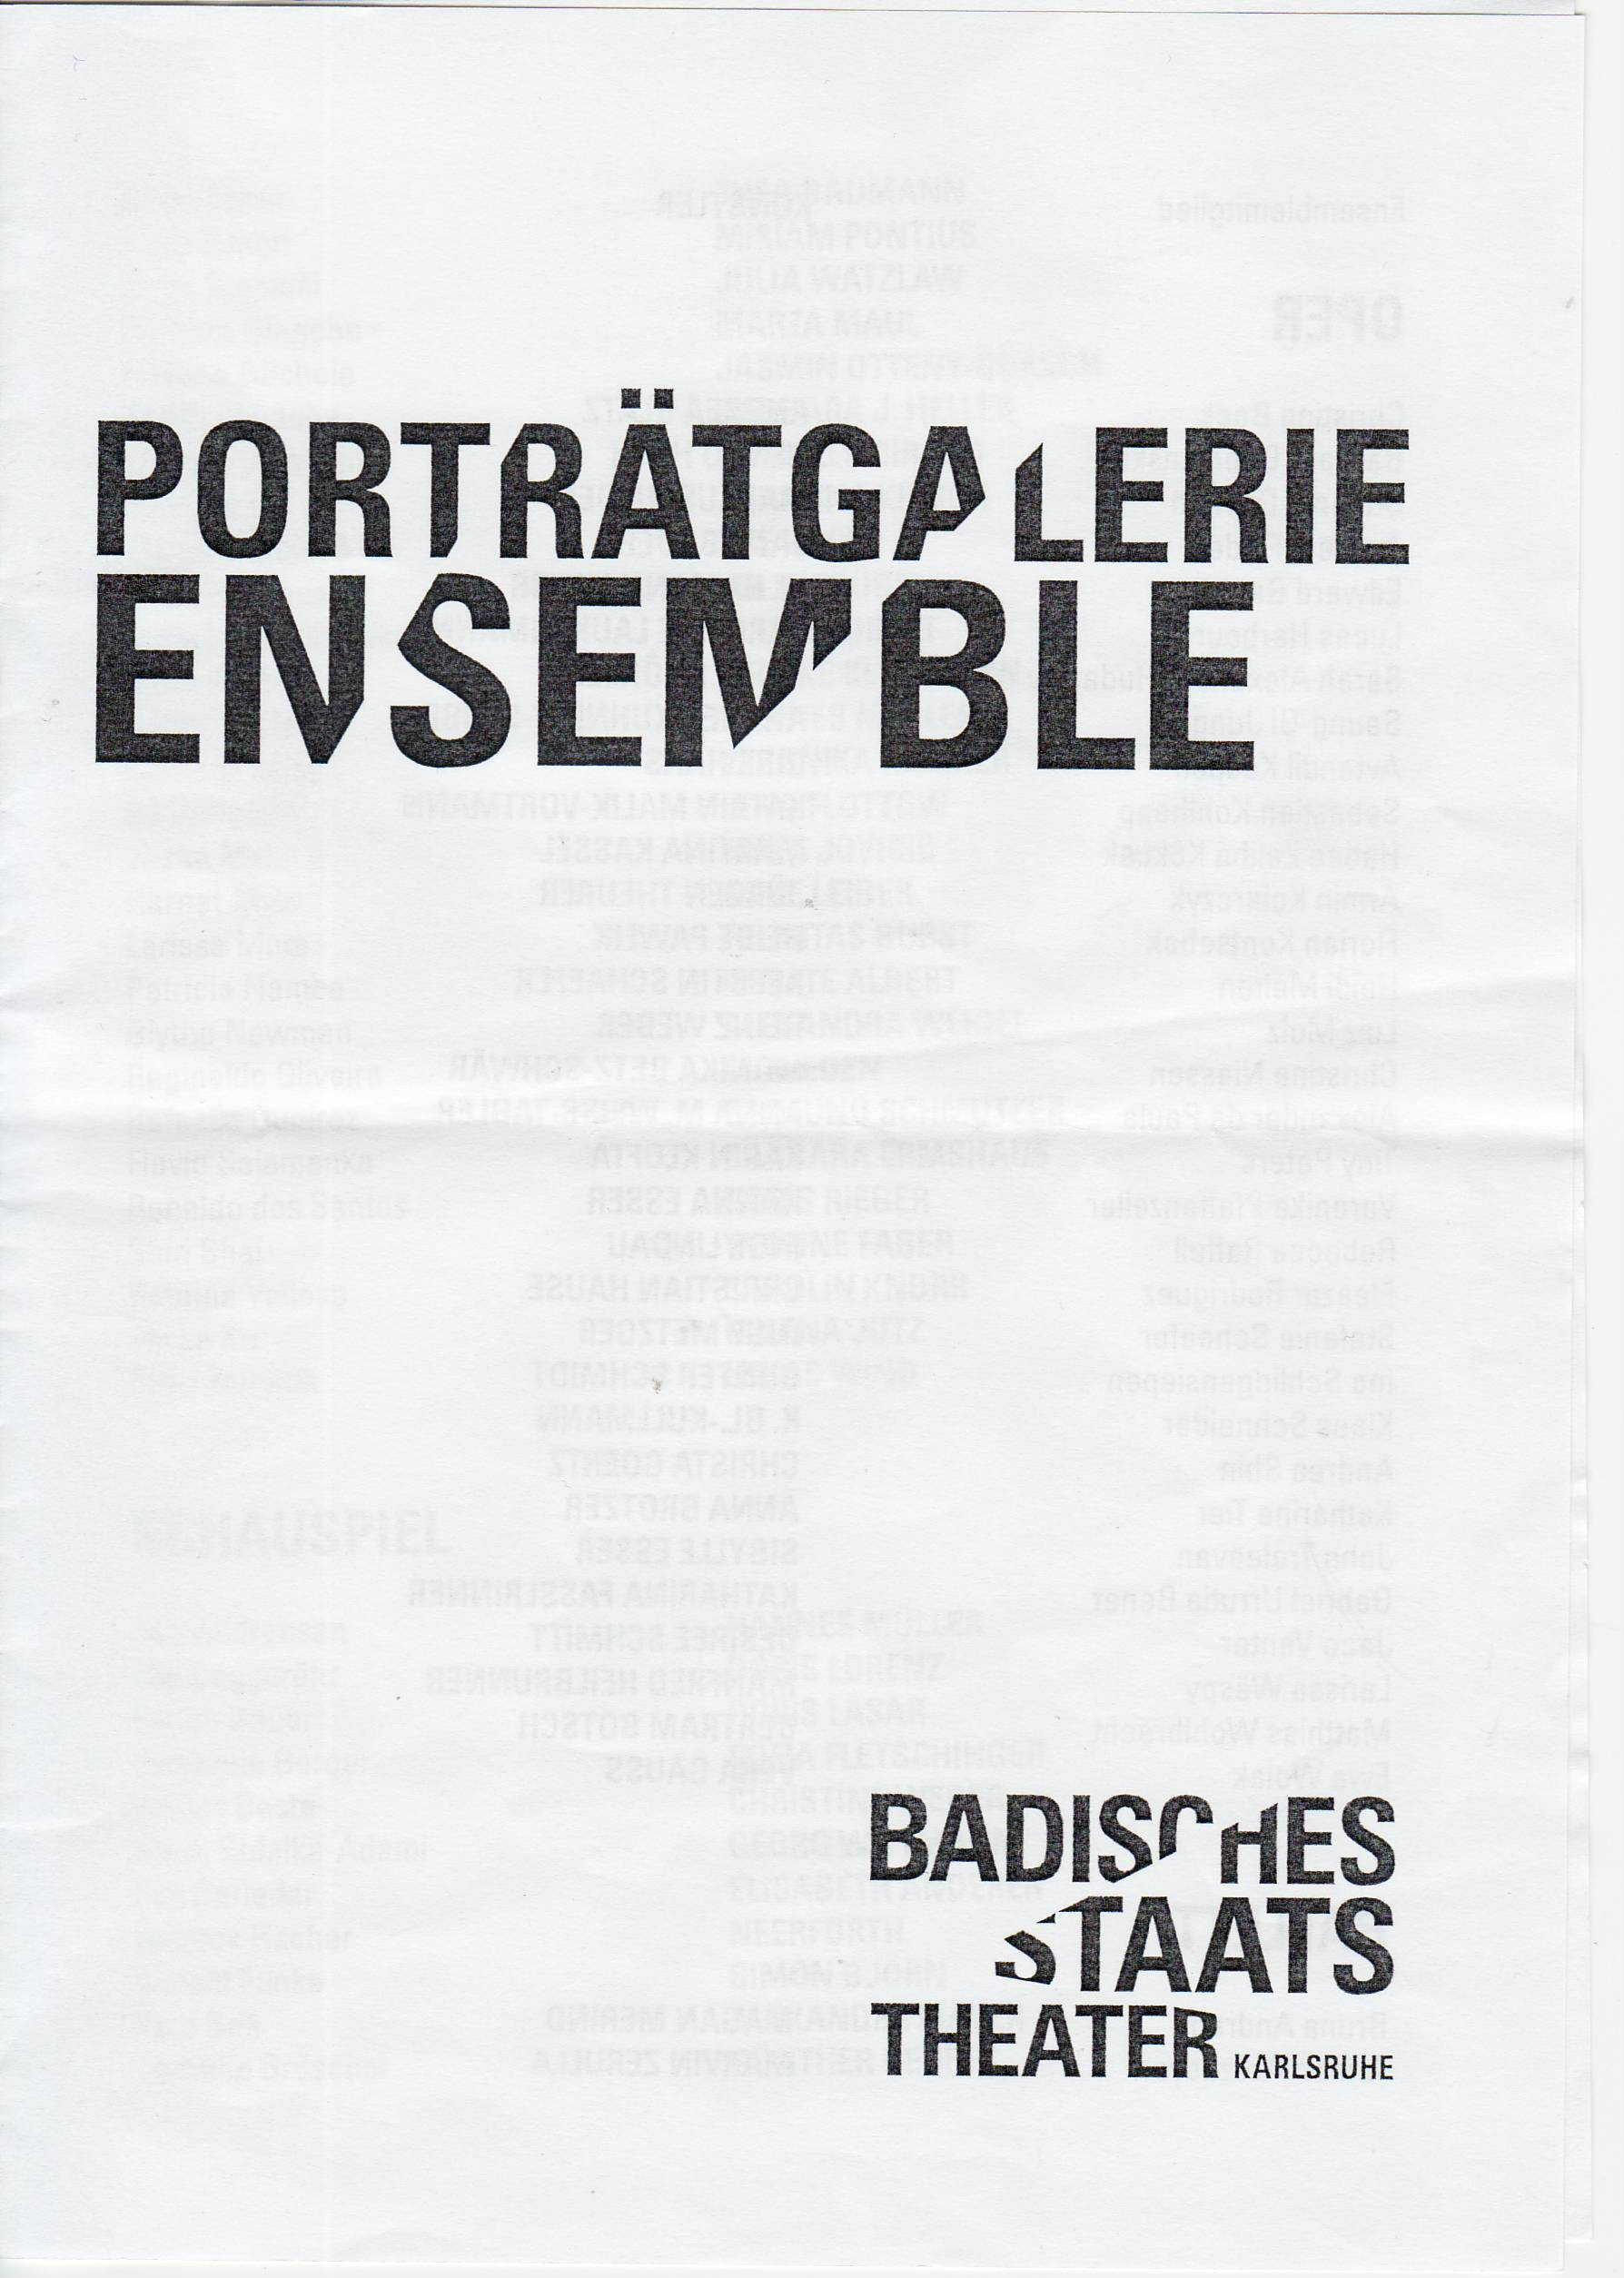 PortaitGalerieEnsemble2011